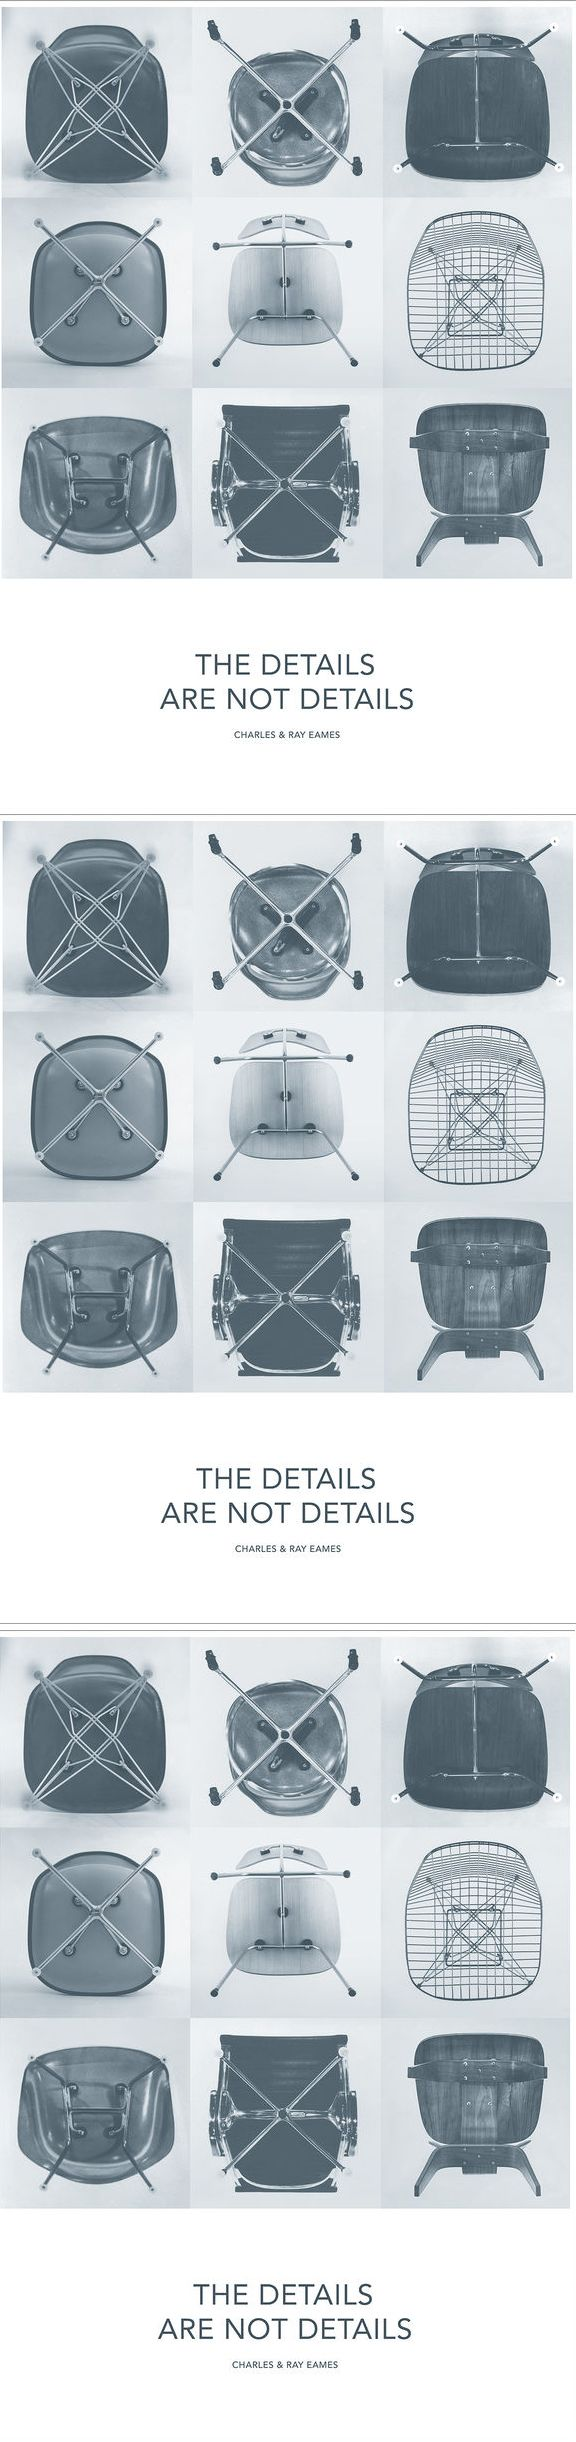 244 best Eames images on Pinterest | Chairs, Eames and Side chairs